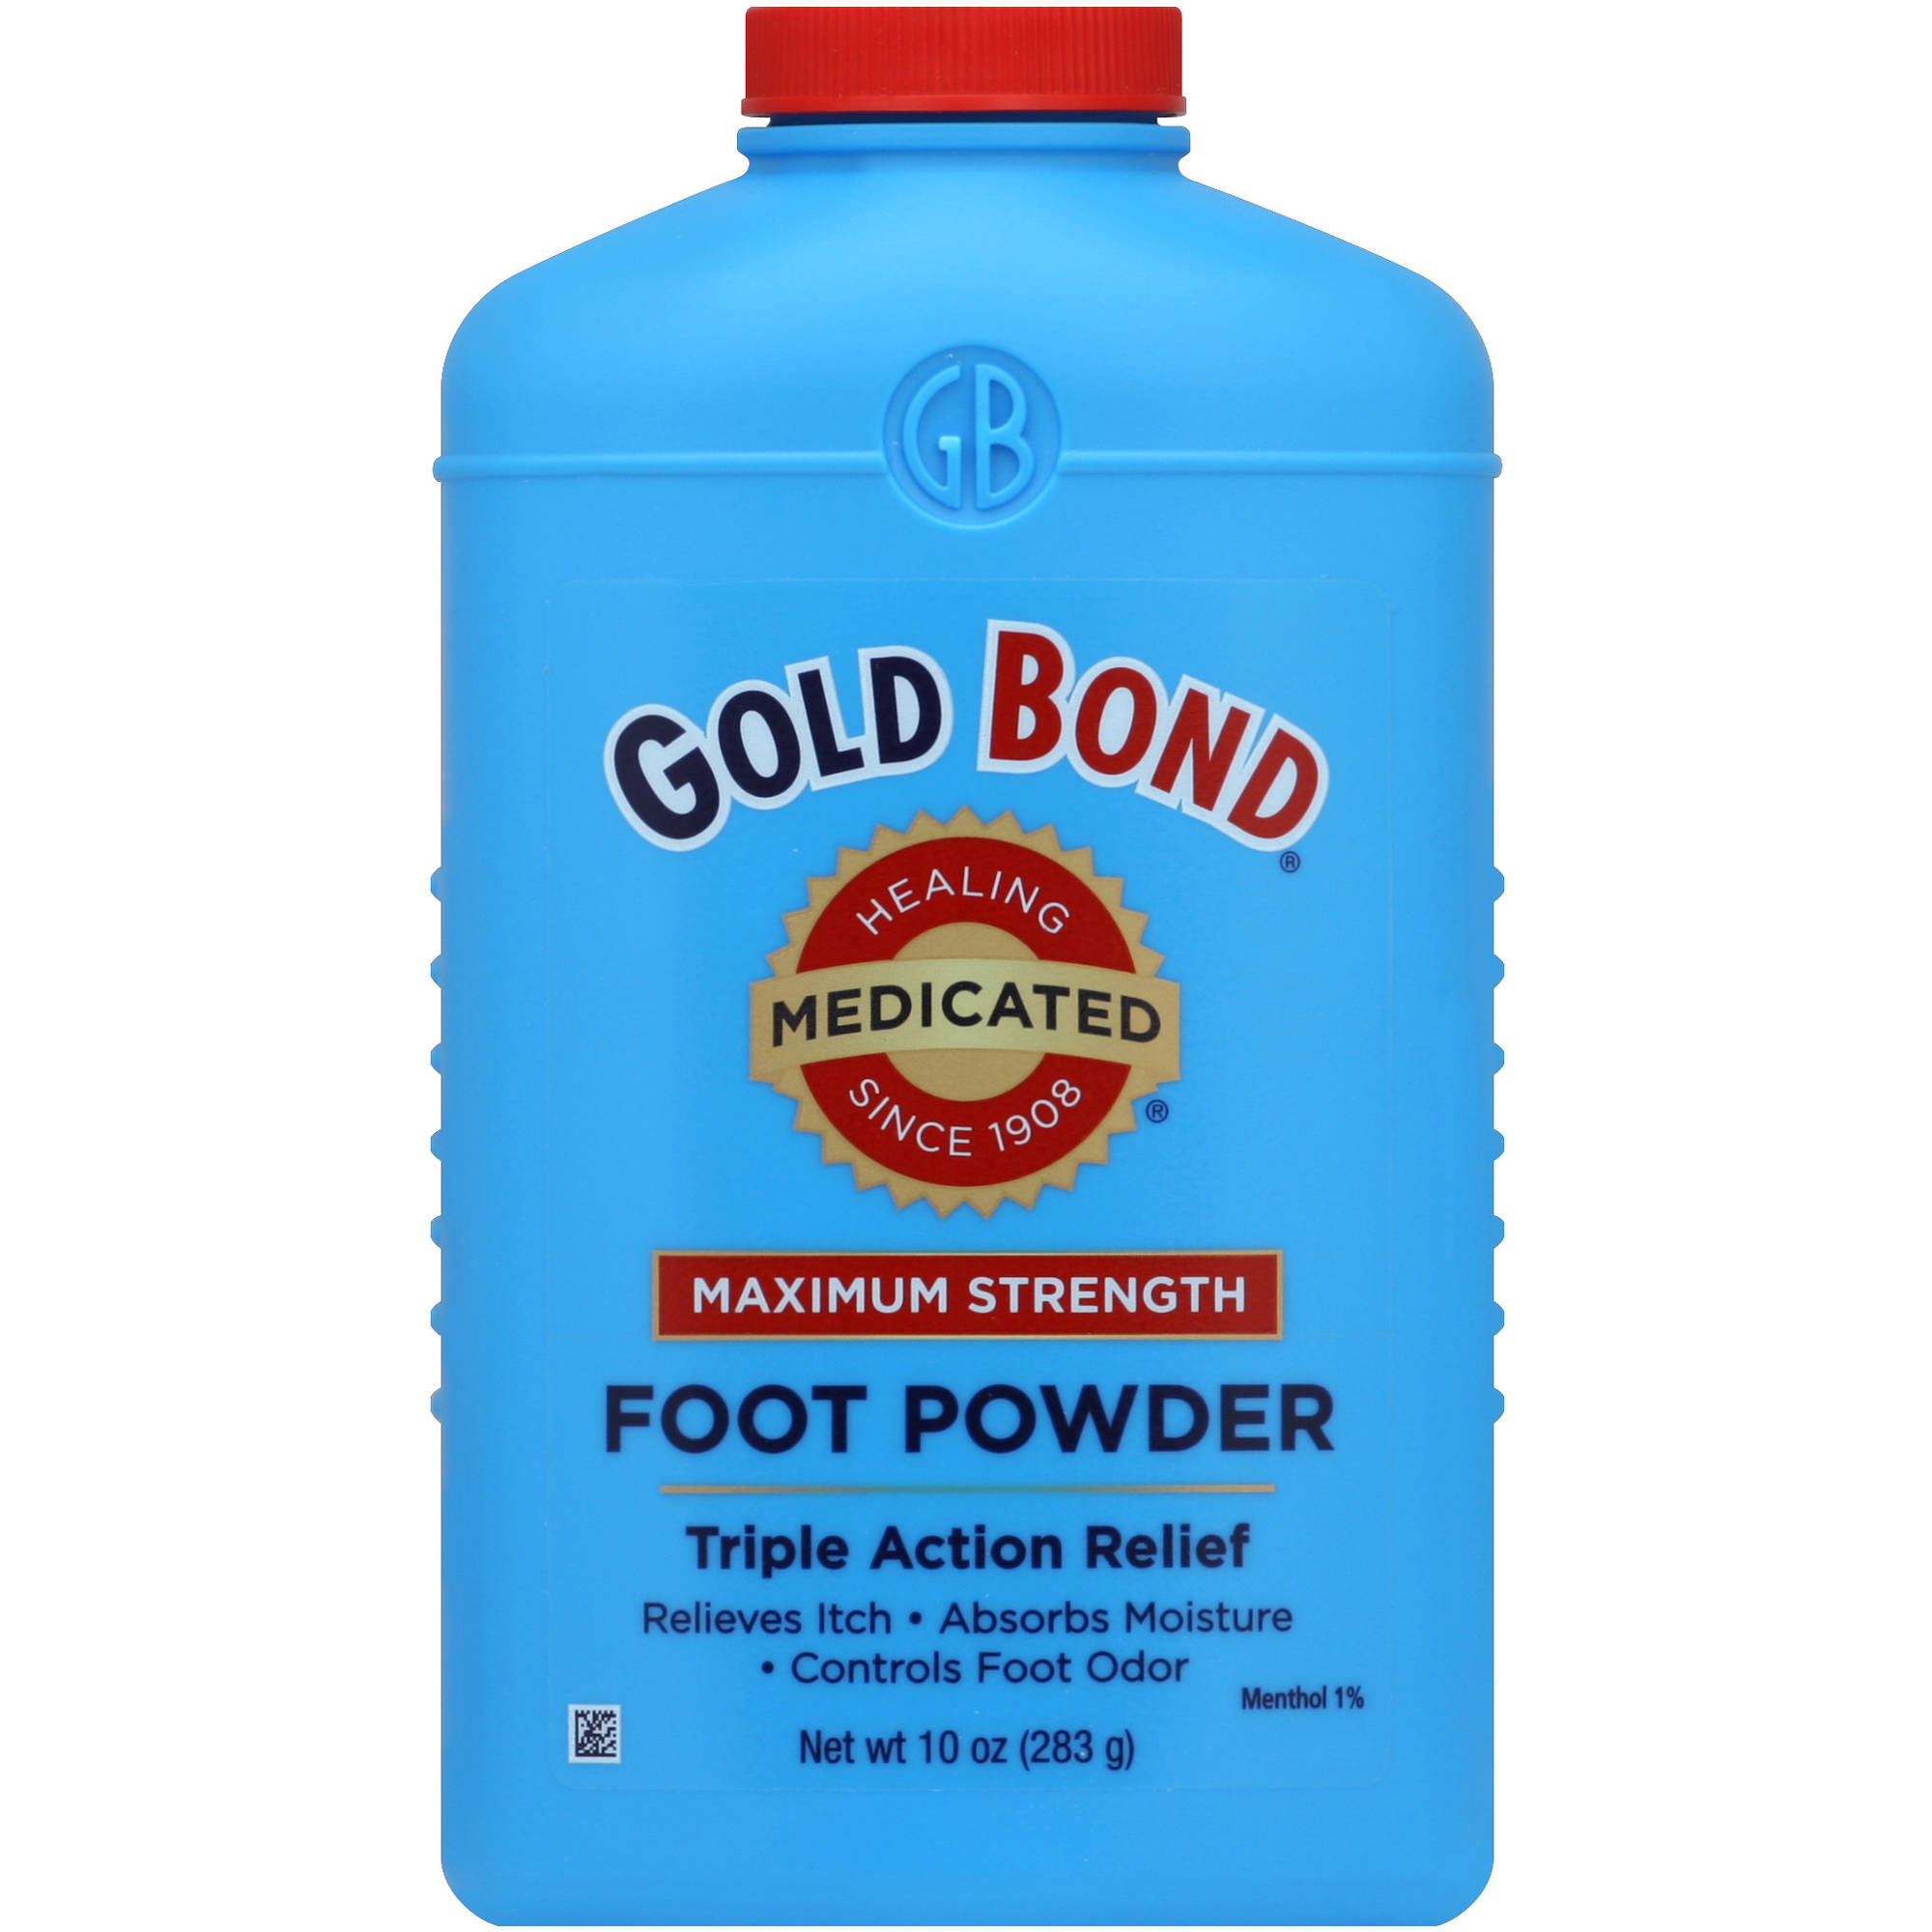 Gold Bond Maximum Strength Foot Powder, 10 oz